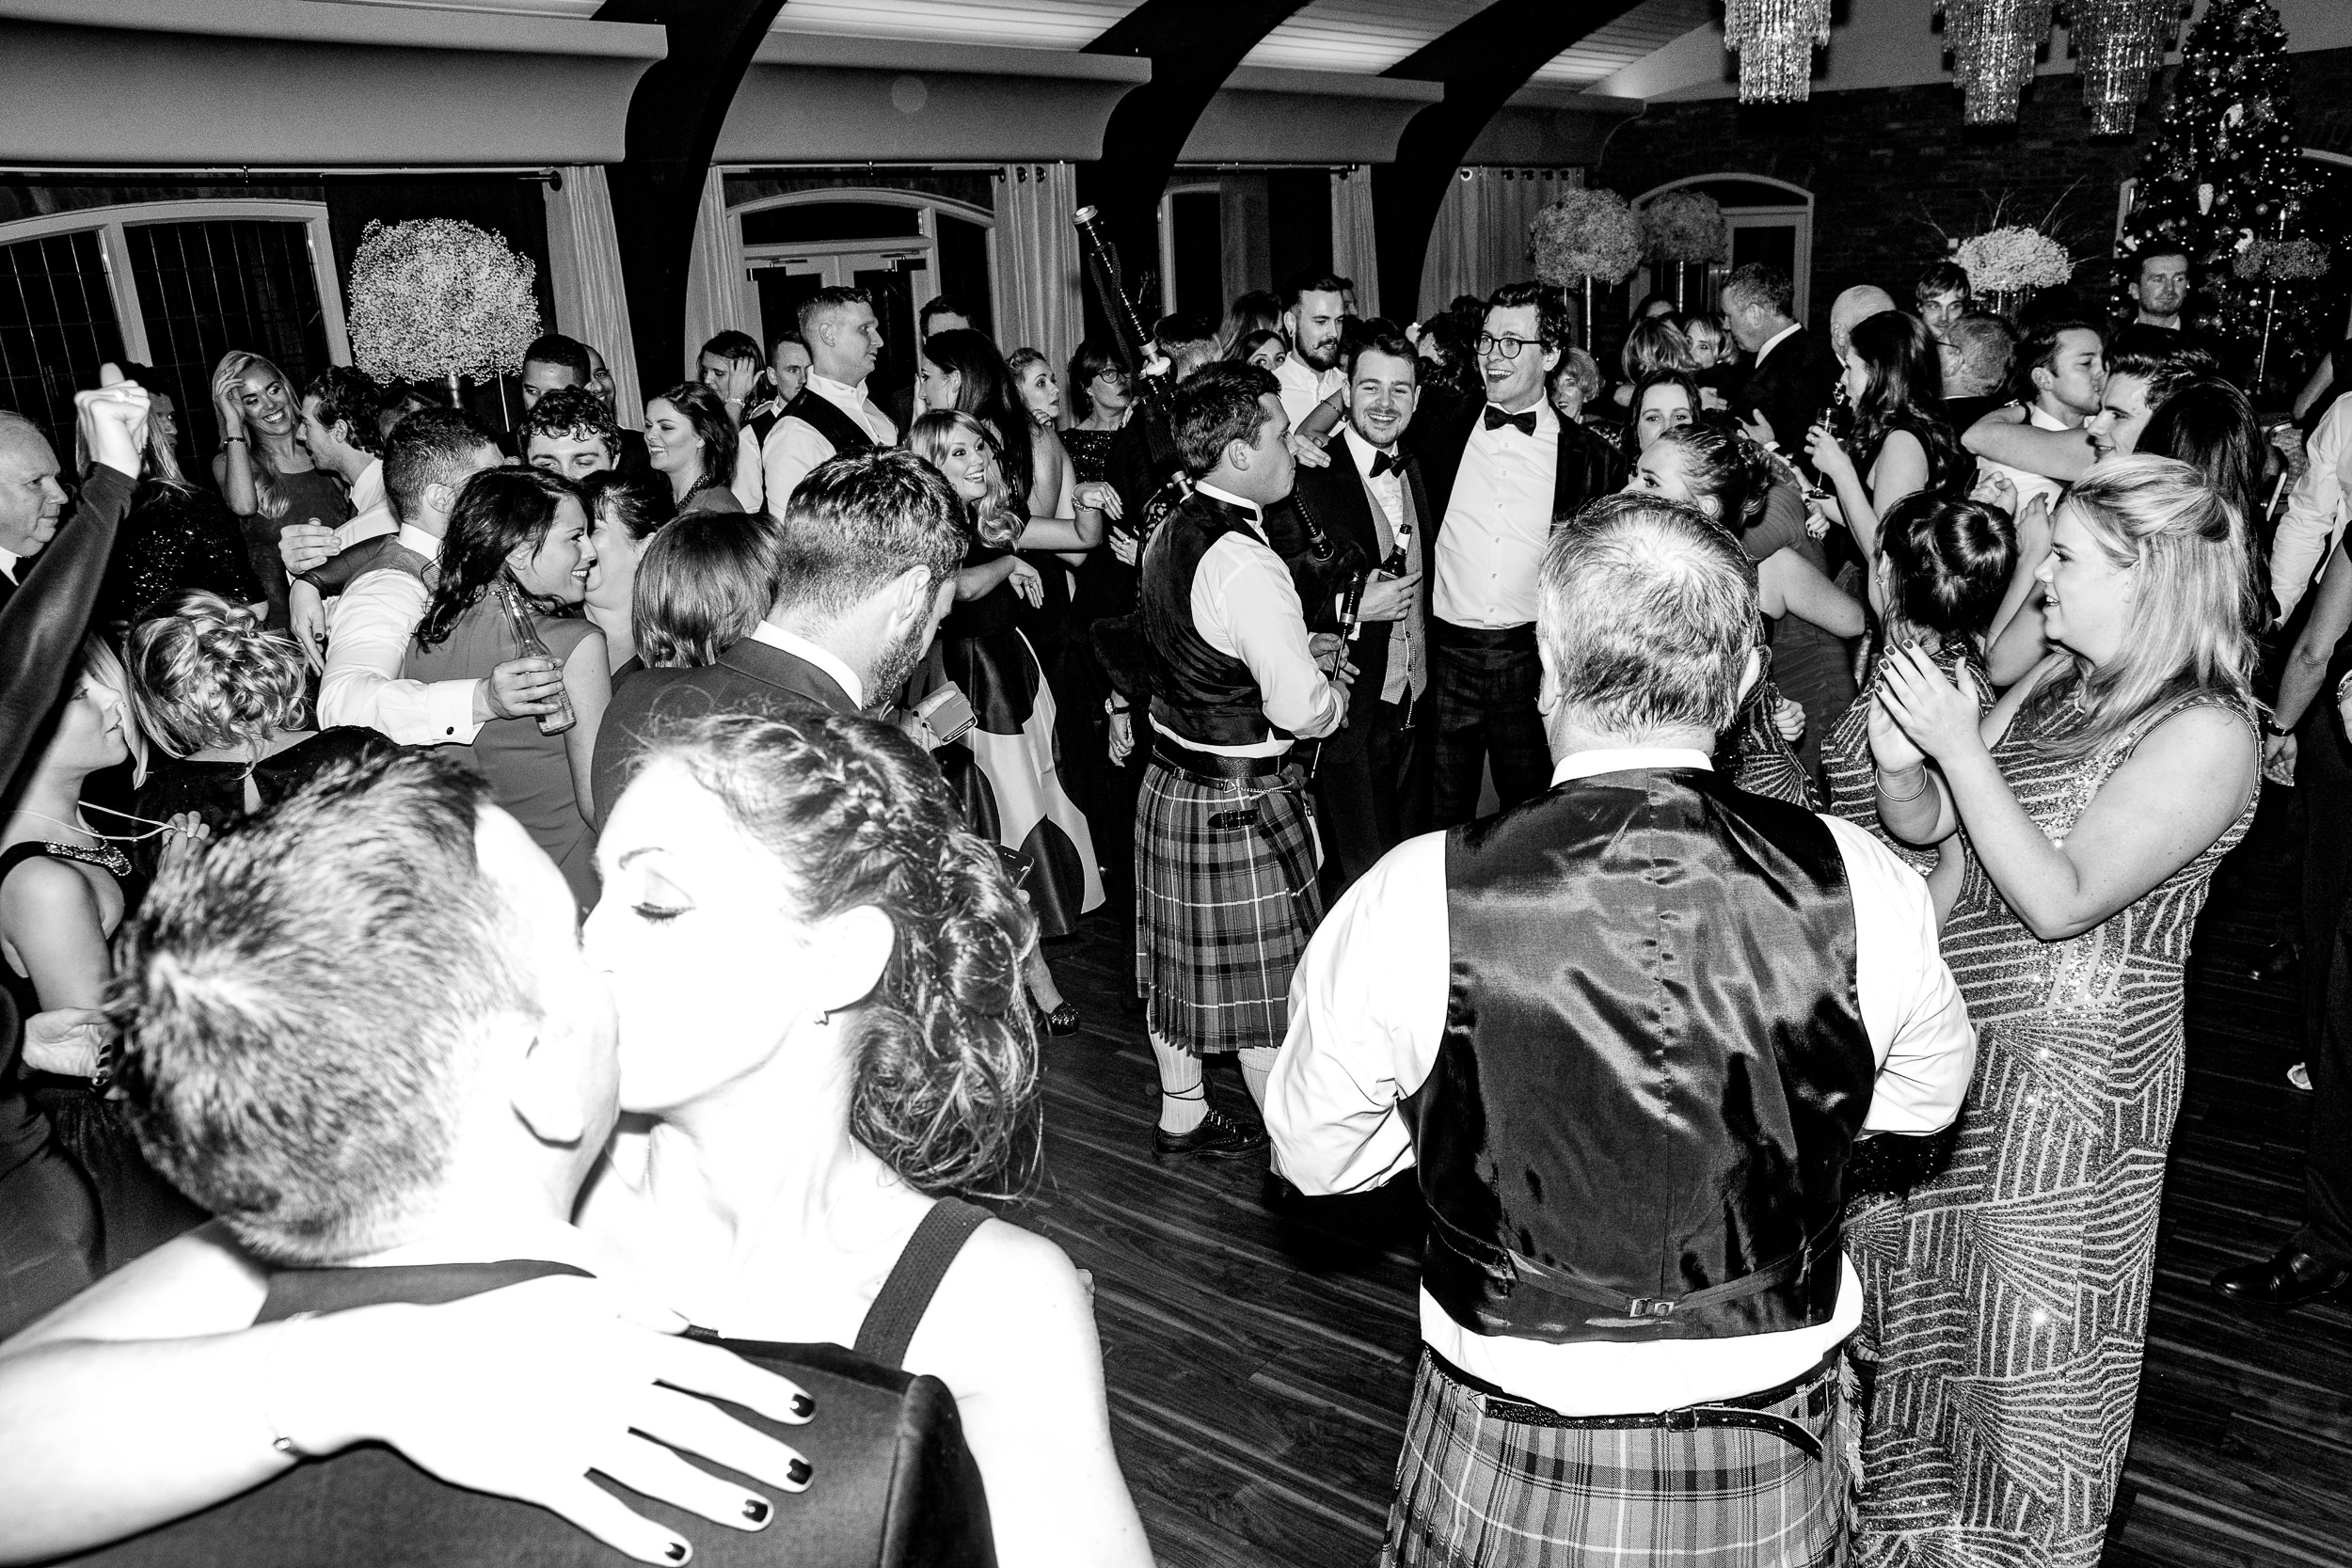 Crowd shot from midnight.Kissing, Bag-pipes, Kilts, and a little chaos.